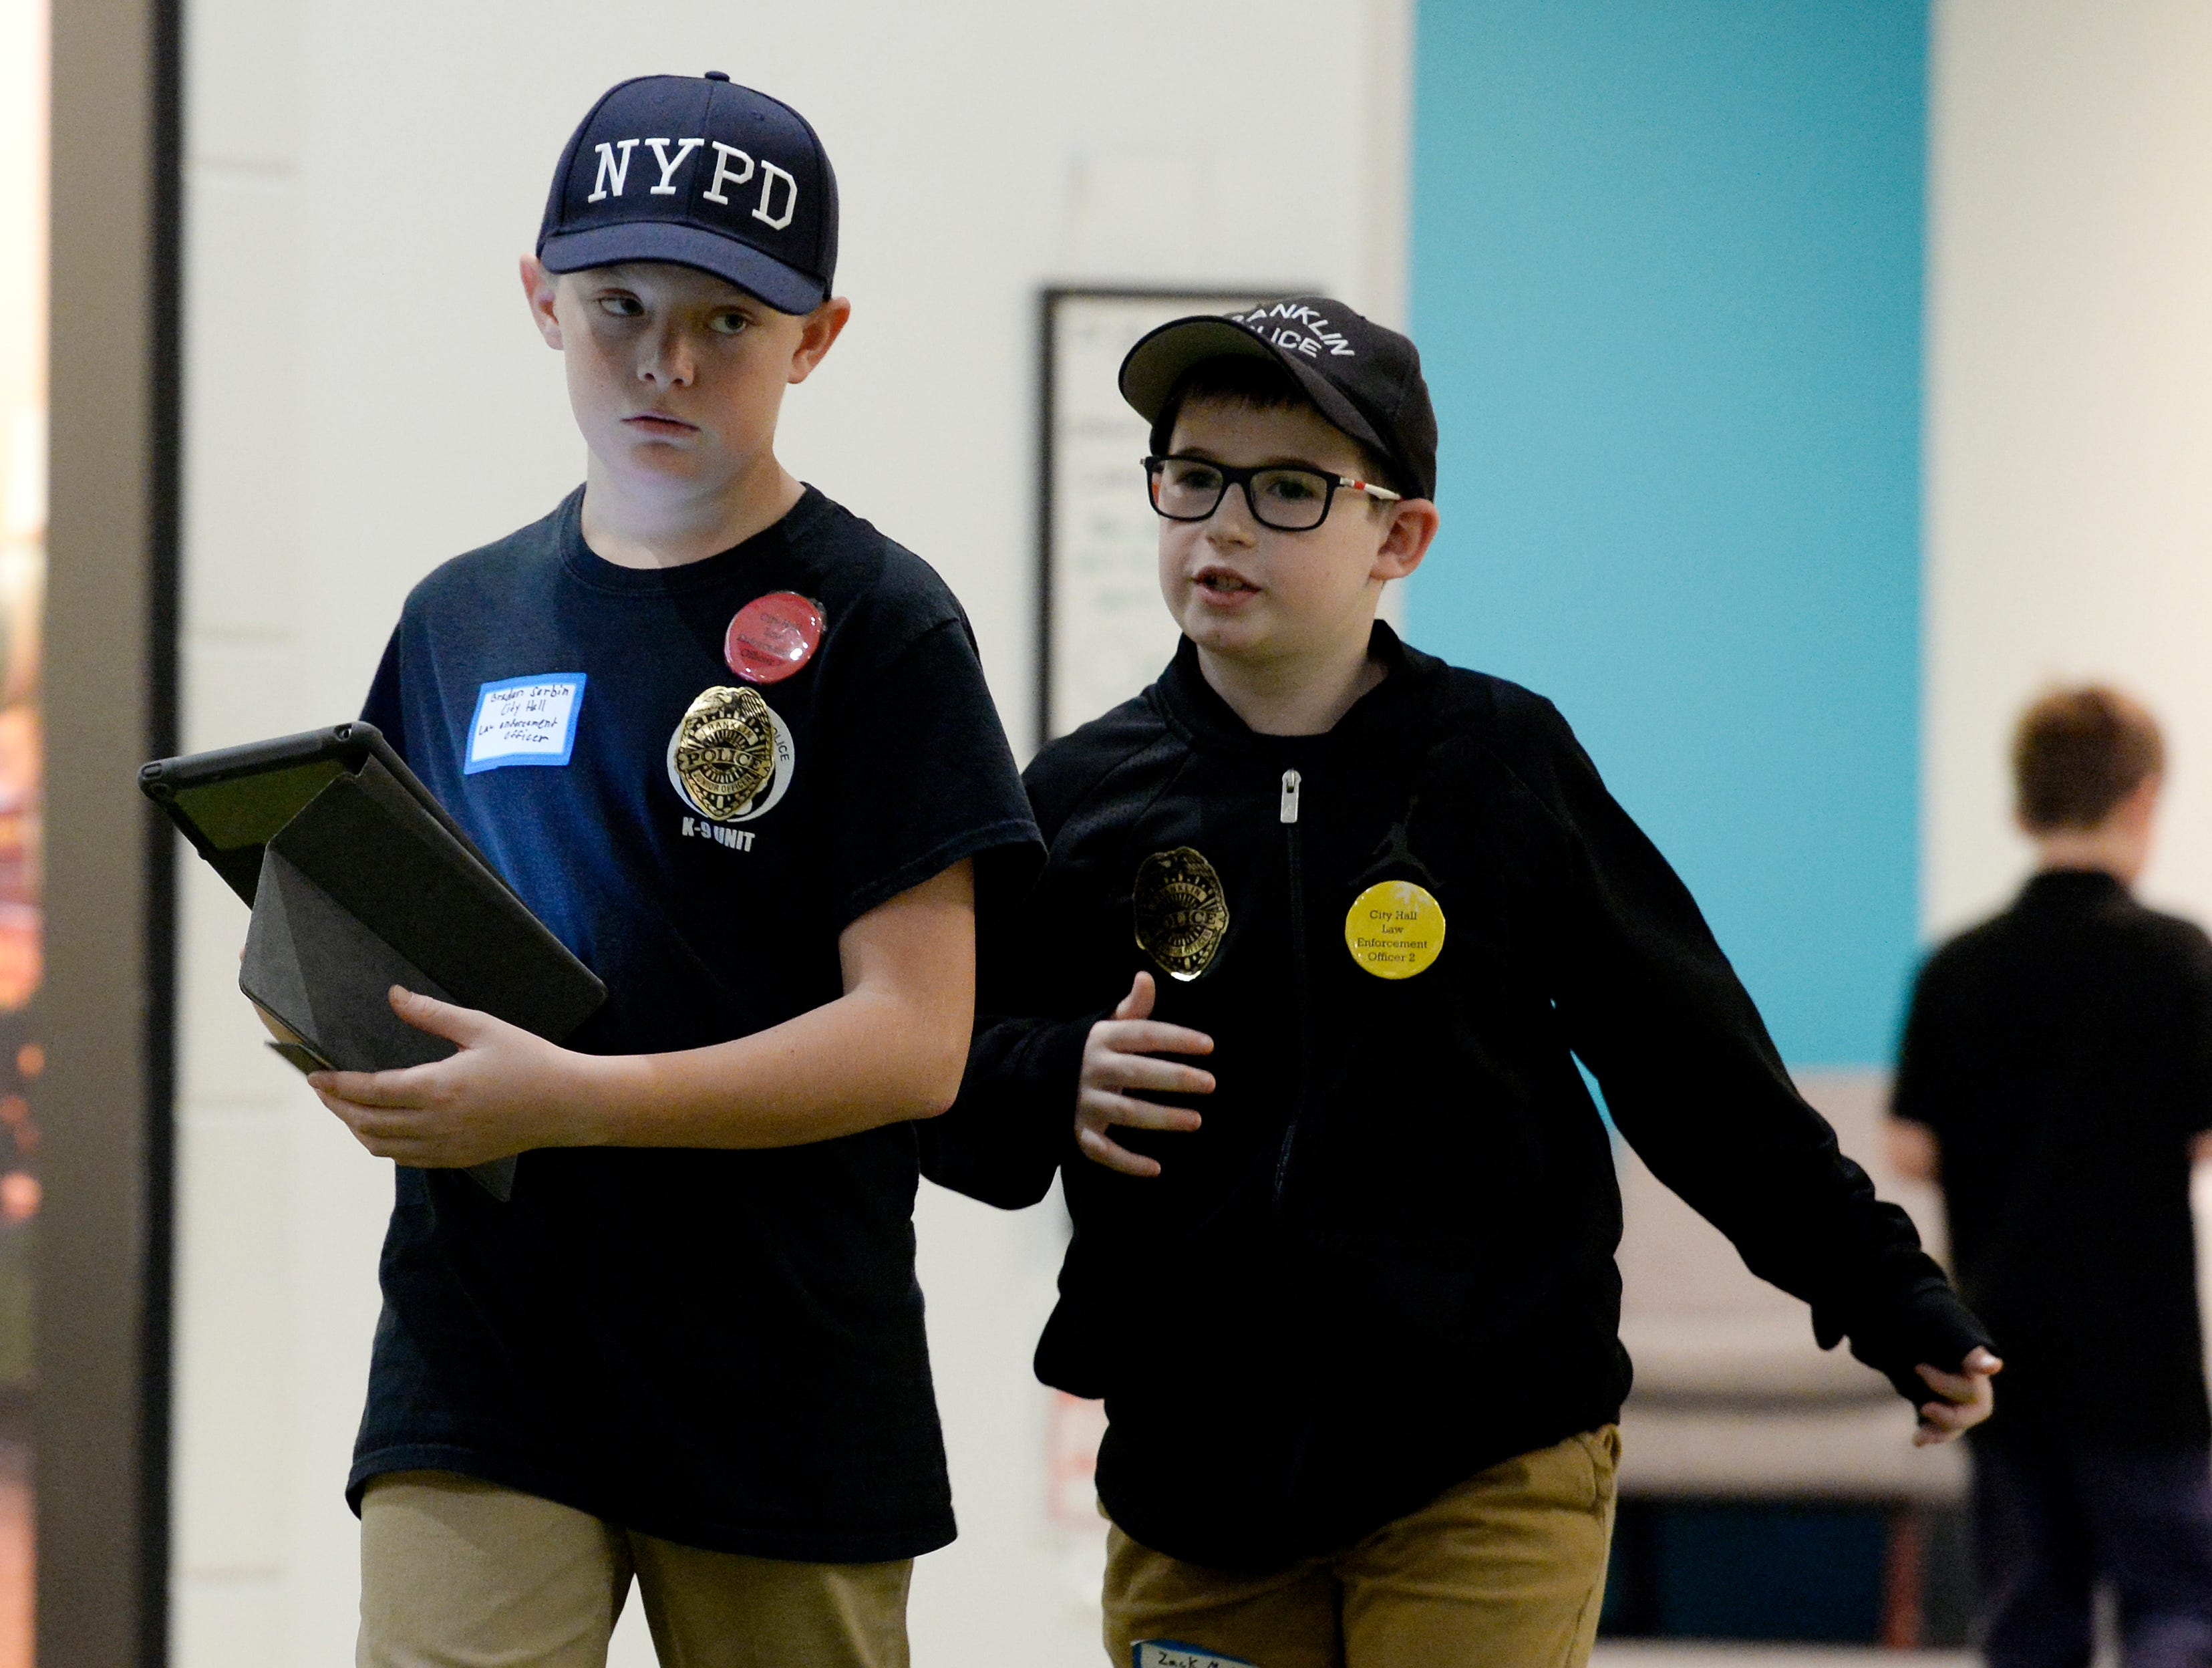 Student police officers Braden Serbin, left, and Zack Martin, look for violations in Junior Achievement's BizTown on Thursday, Dec. 13, 2018, in Nashville, Tenn. Mill Creek Elementary students participated in the program for fifth graders to learn how the economy works. Junior Achievement is expanding to add Finance Park in 2020 so students can learn about expenses and managing money.